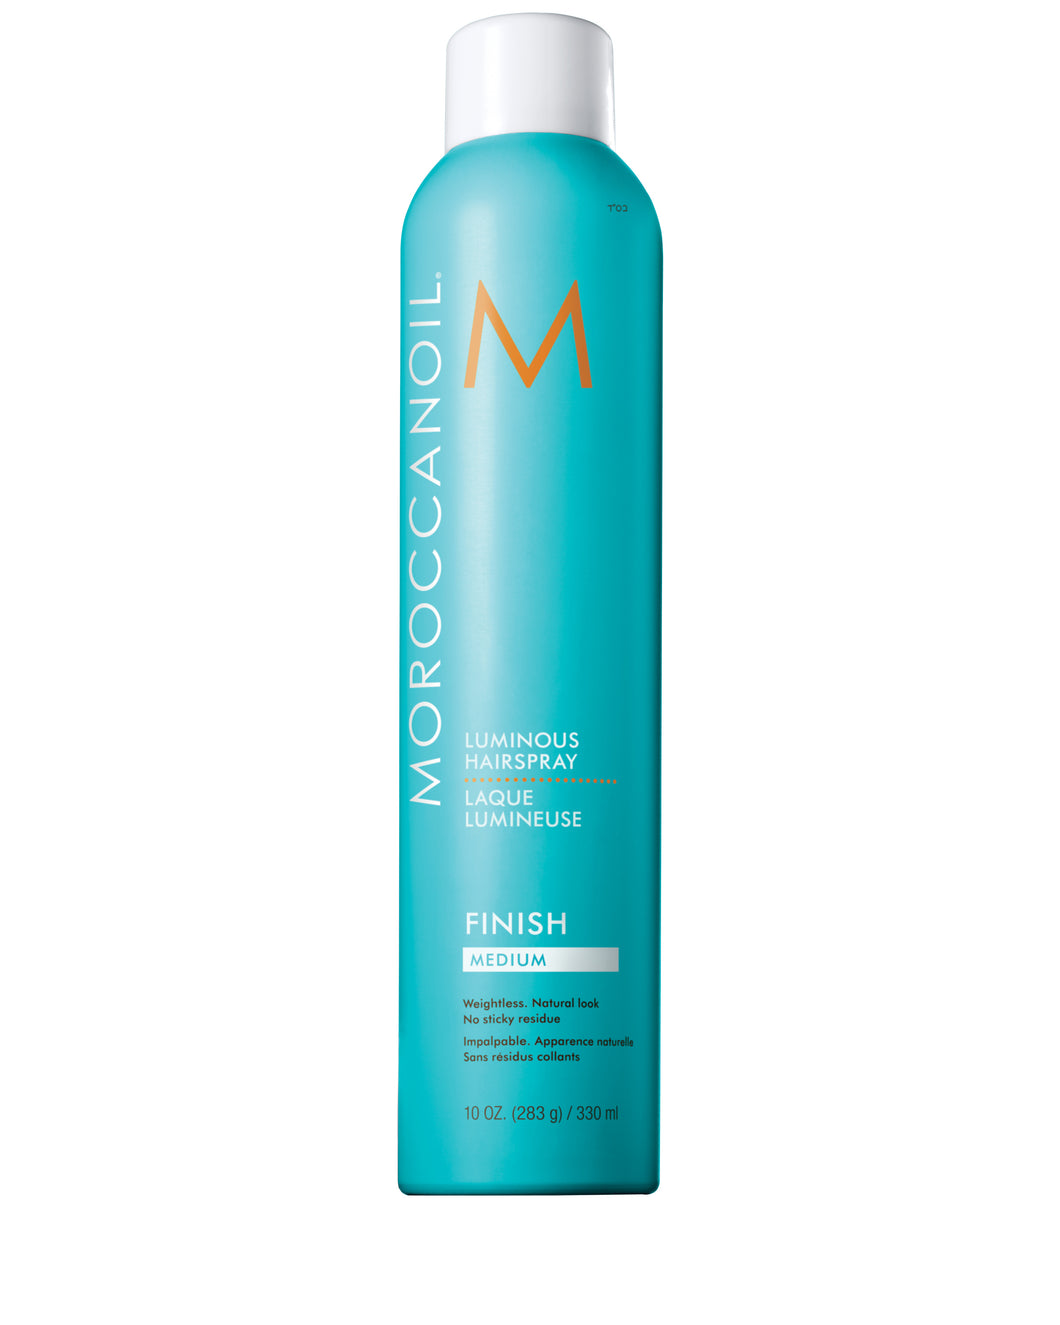 Luminous Hairspray